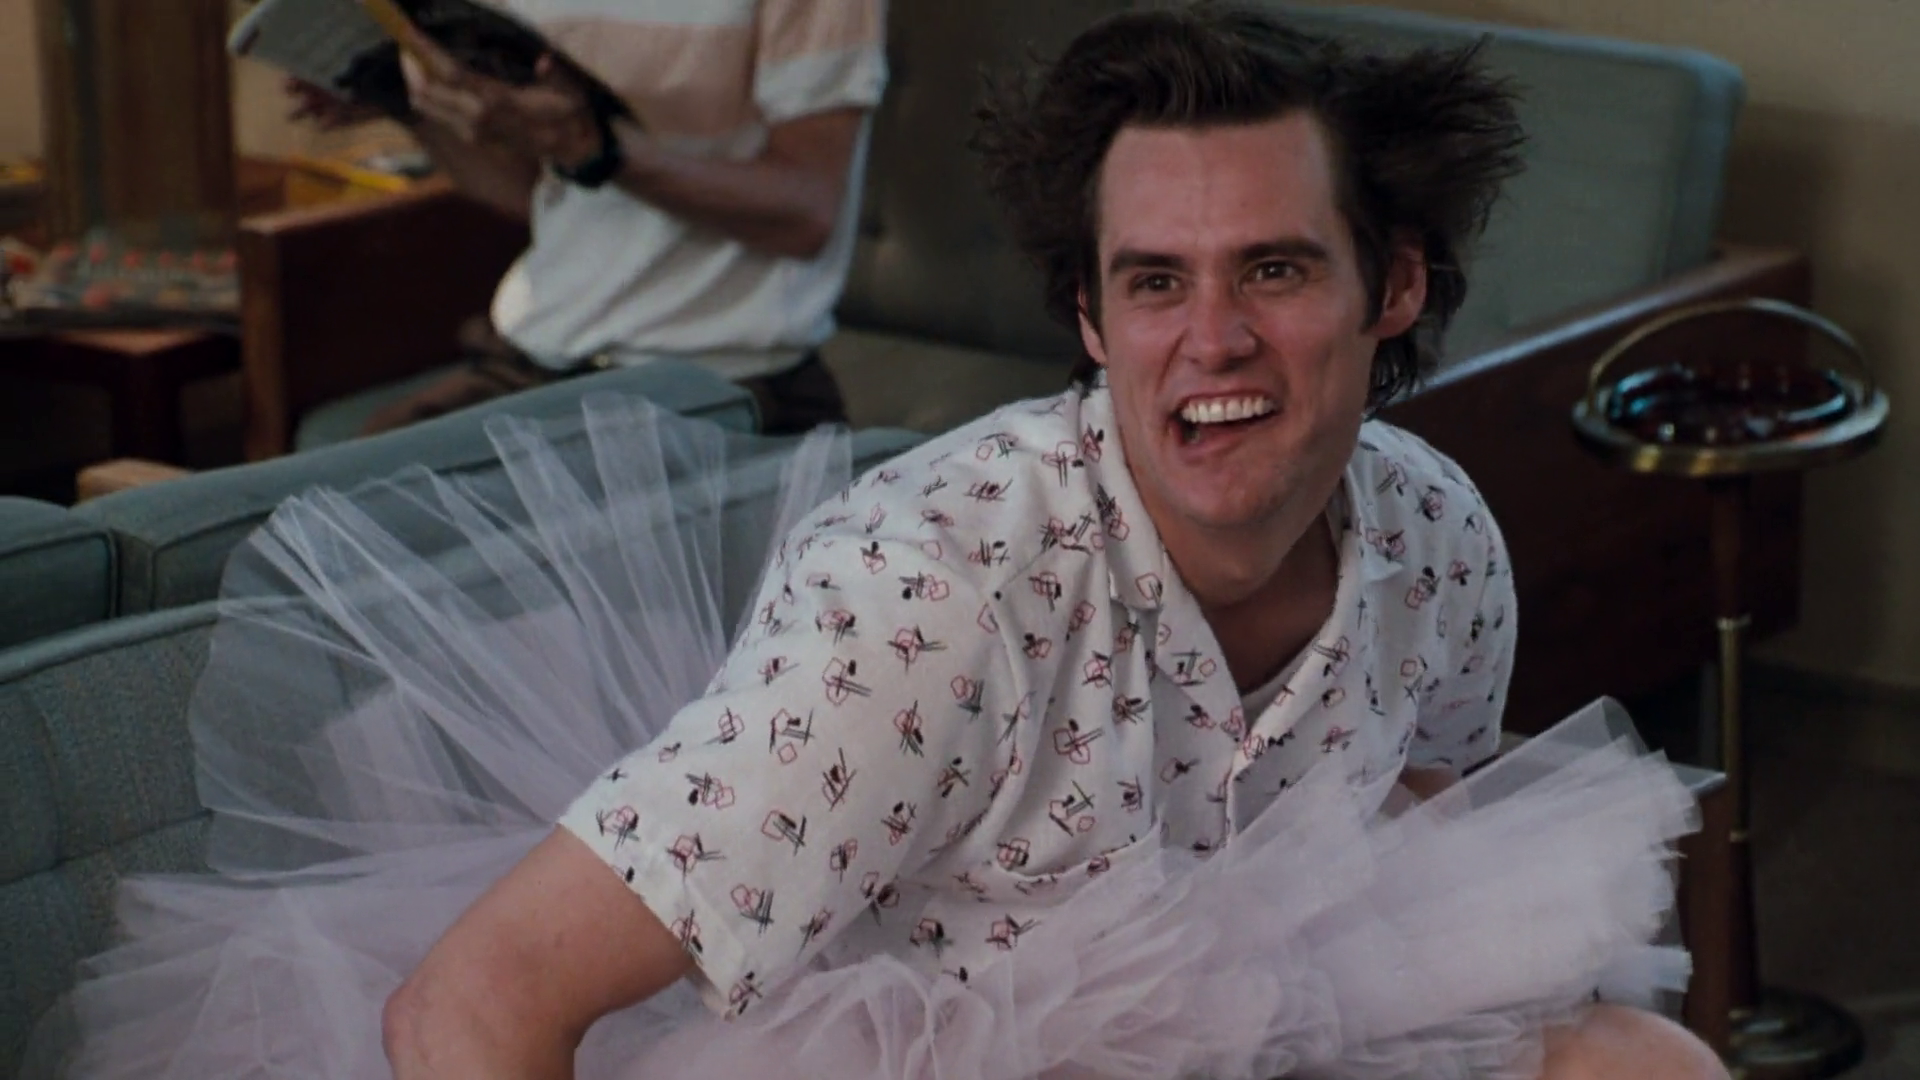 Ace ventura pet detective hd wallpaper background image 1920x1080 id615260 wallpaper abyss